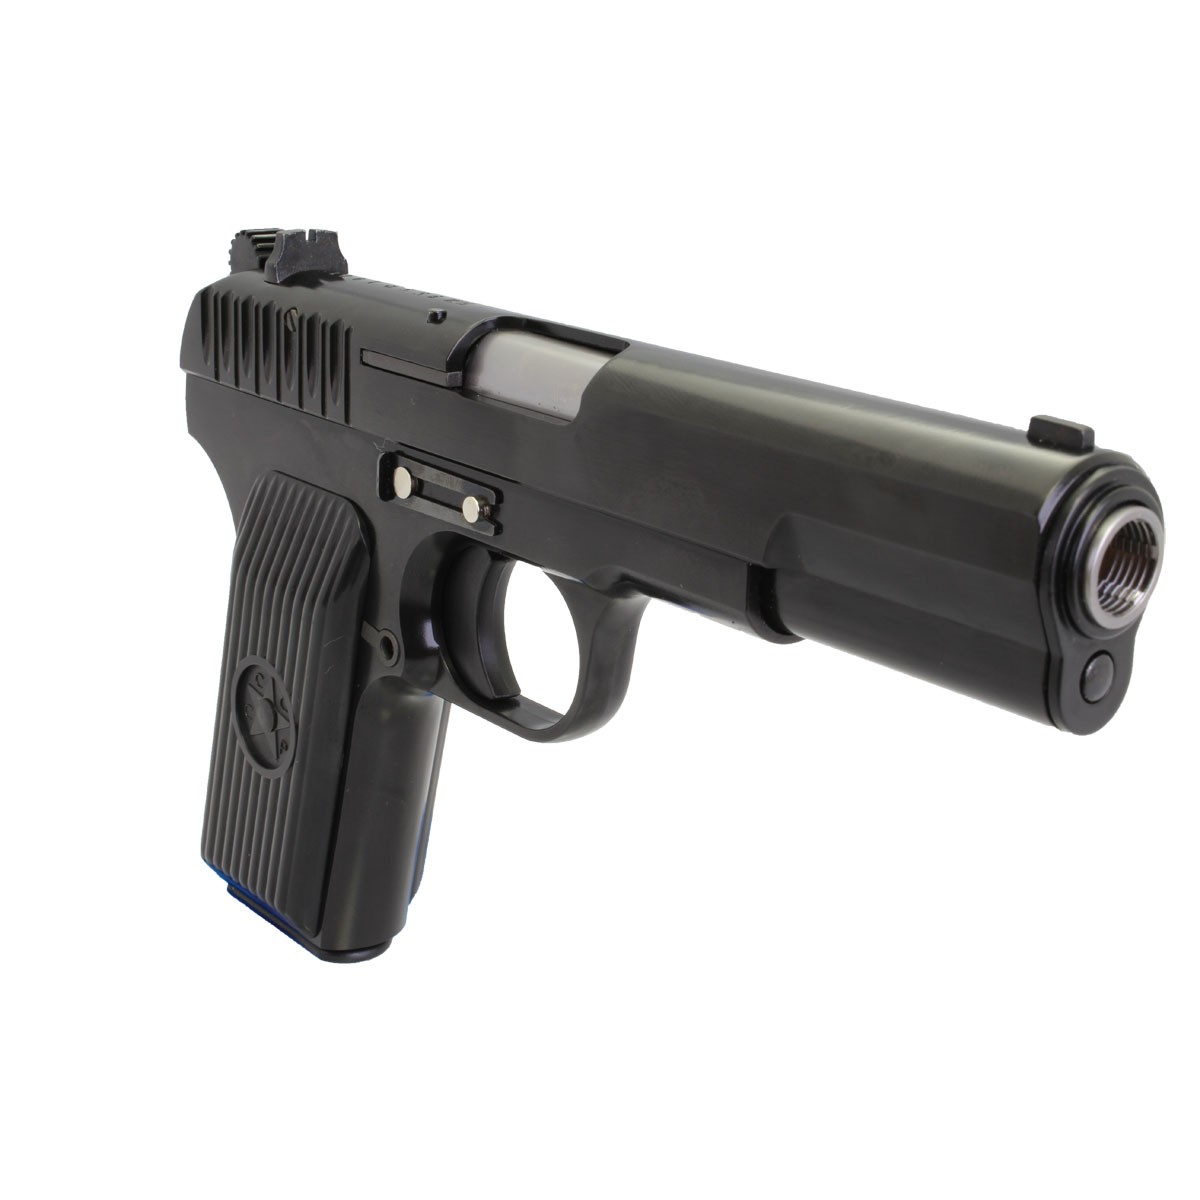 WE TT33 Full Metal Gas Blowback Pistol - Black